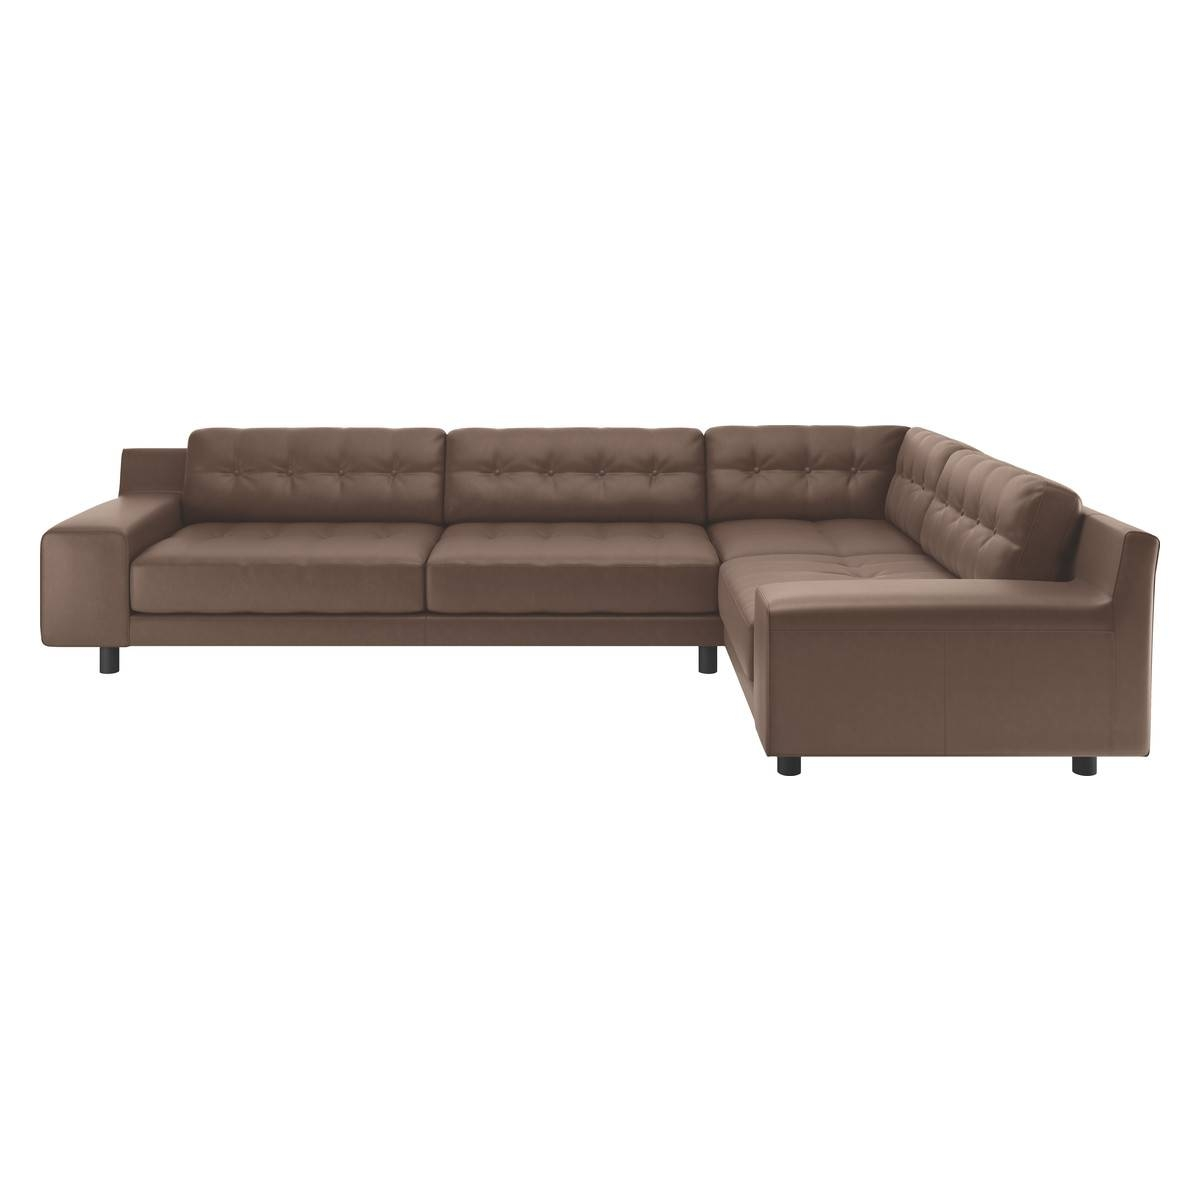 Brown Corner Sofa | Shop For Cheap Sofas And Save Online within Cheap Corner Sofa (Image 5 of 30)